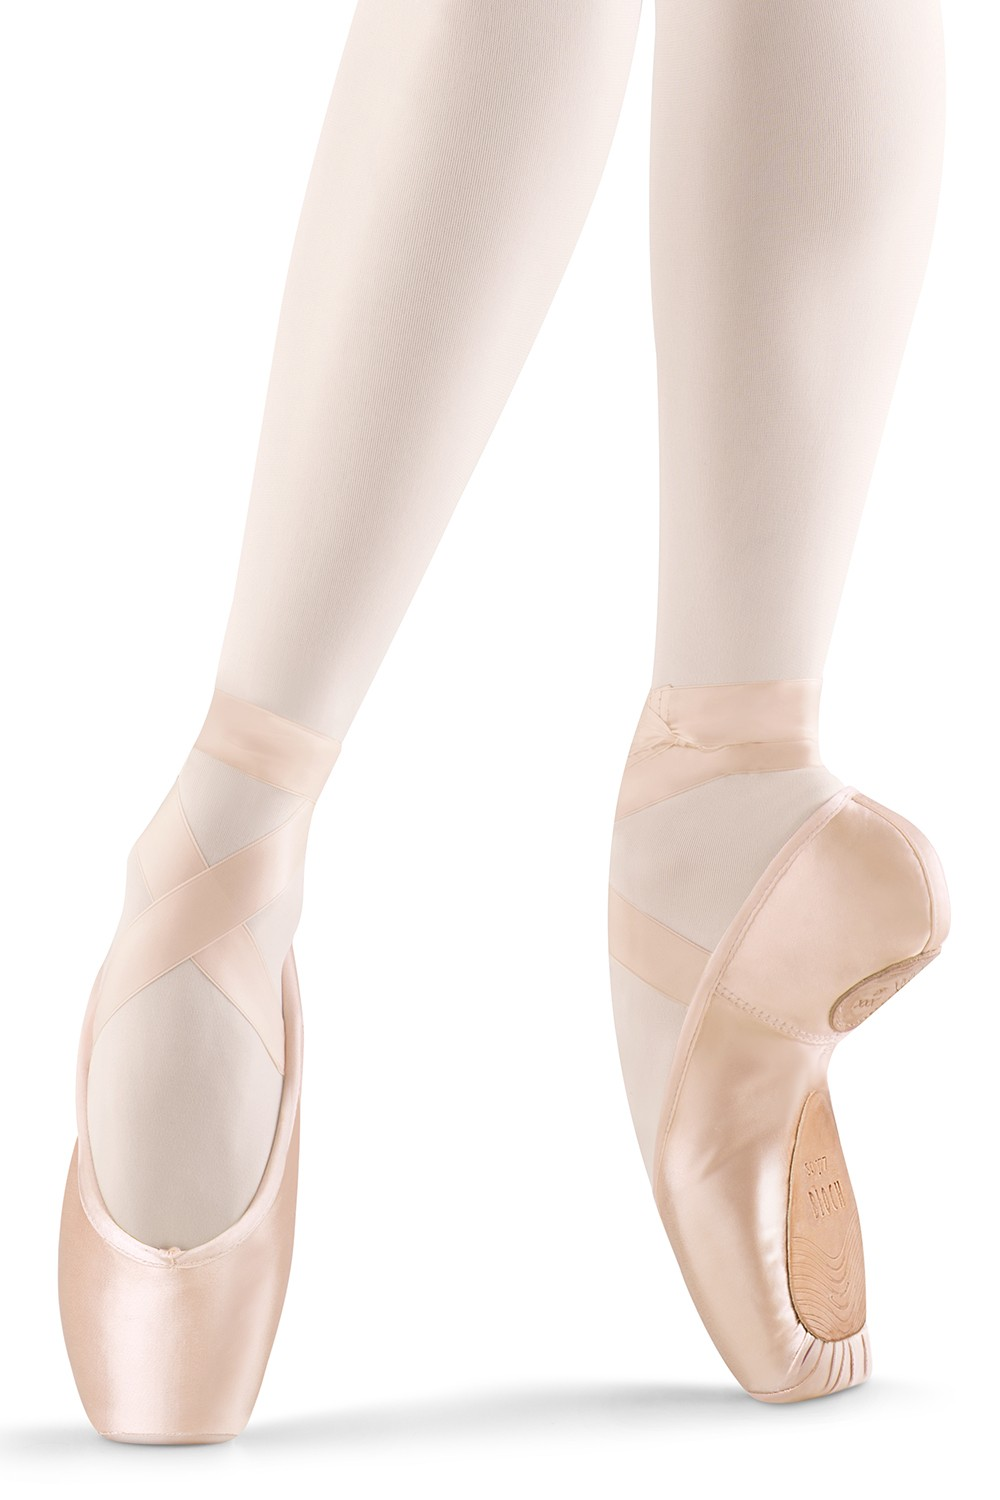 Axi Stretch - Scarpette Da Punta Elasticizzate Stretch Pointe Shoes